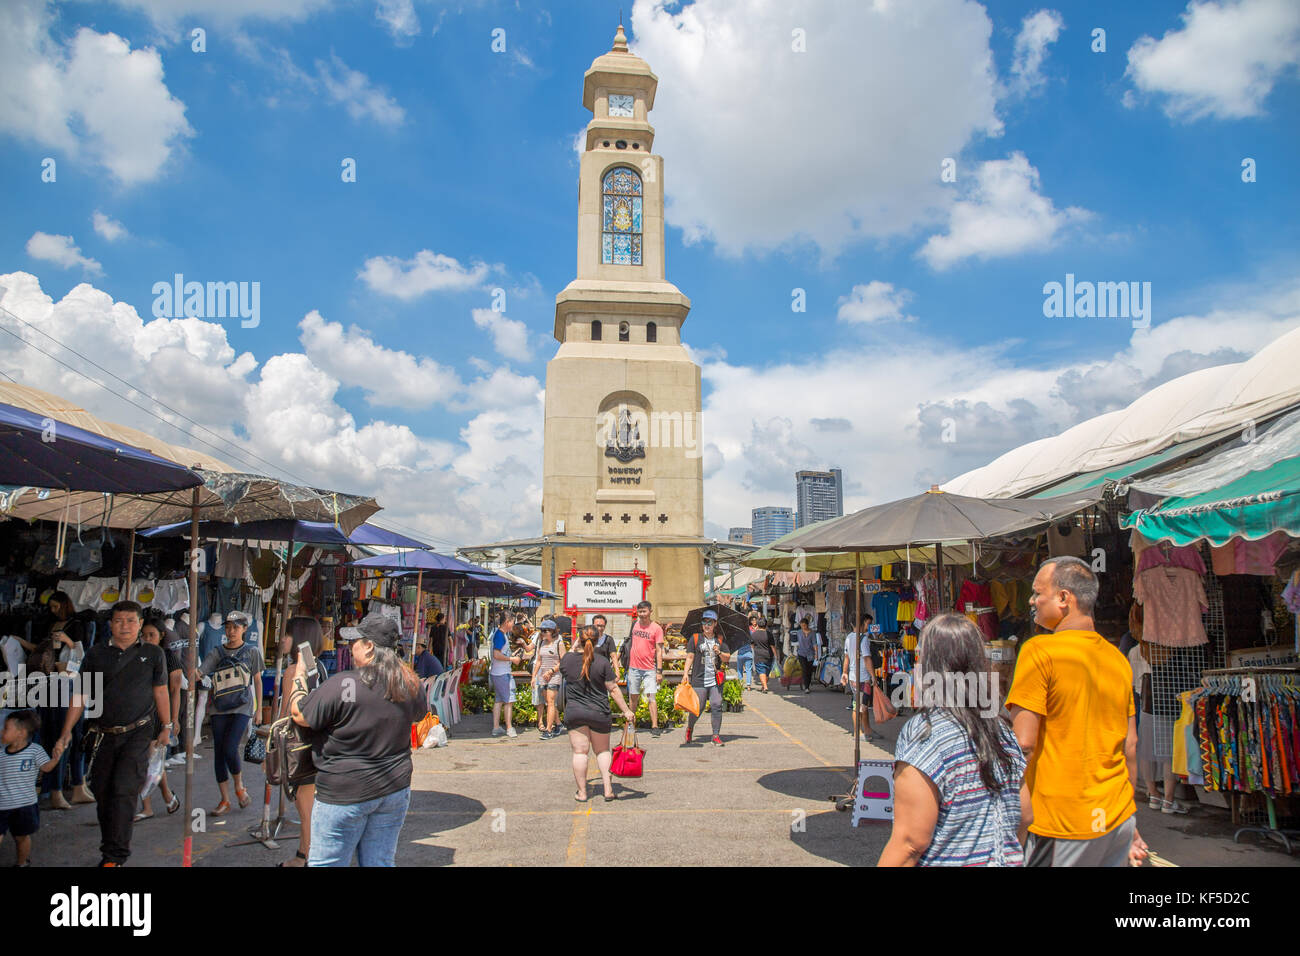 Clock tower in the Chatuchak weekend market, Bangkok, Thailand - Stock Image